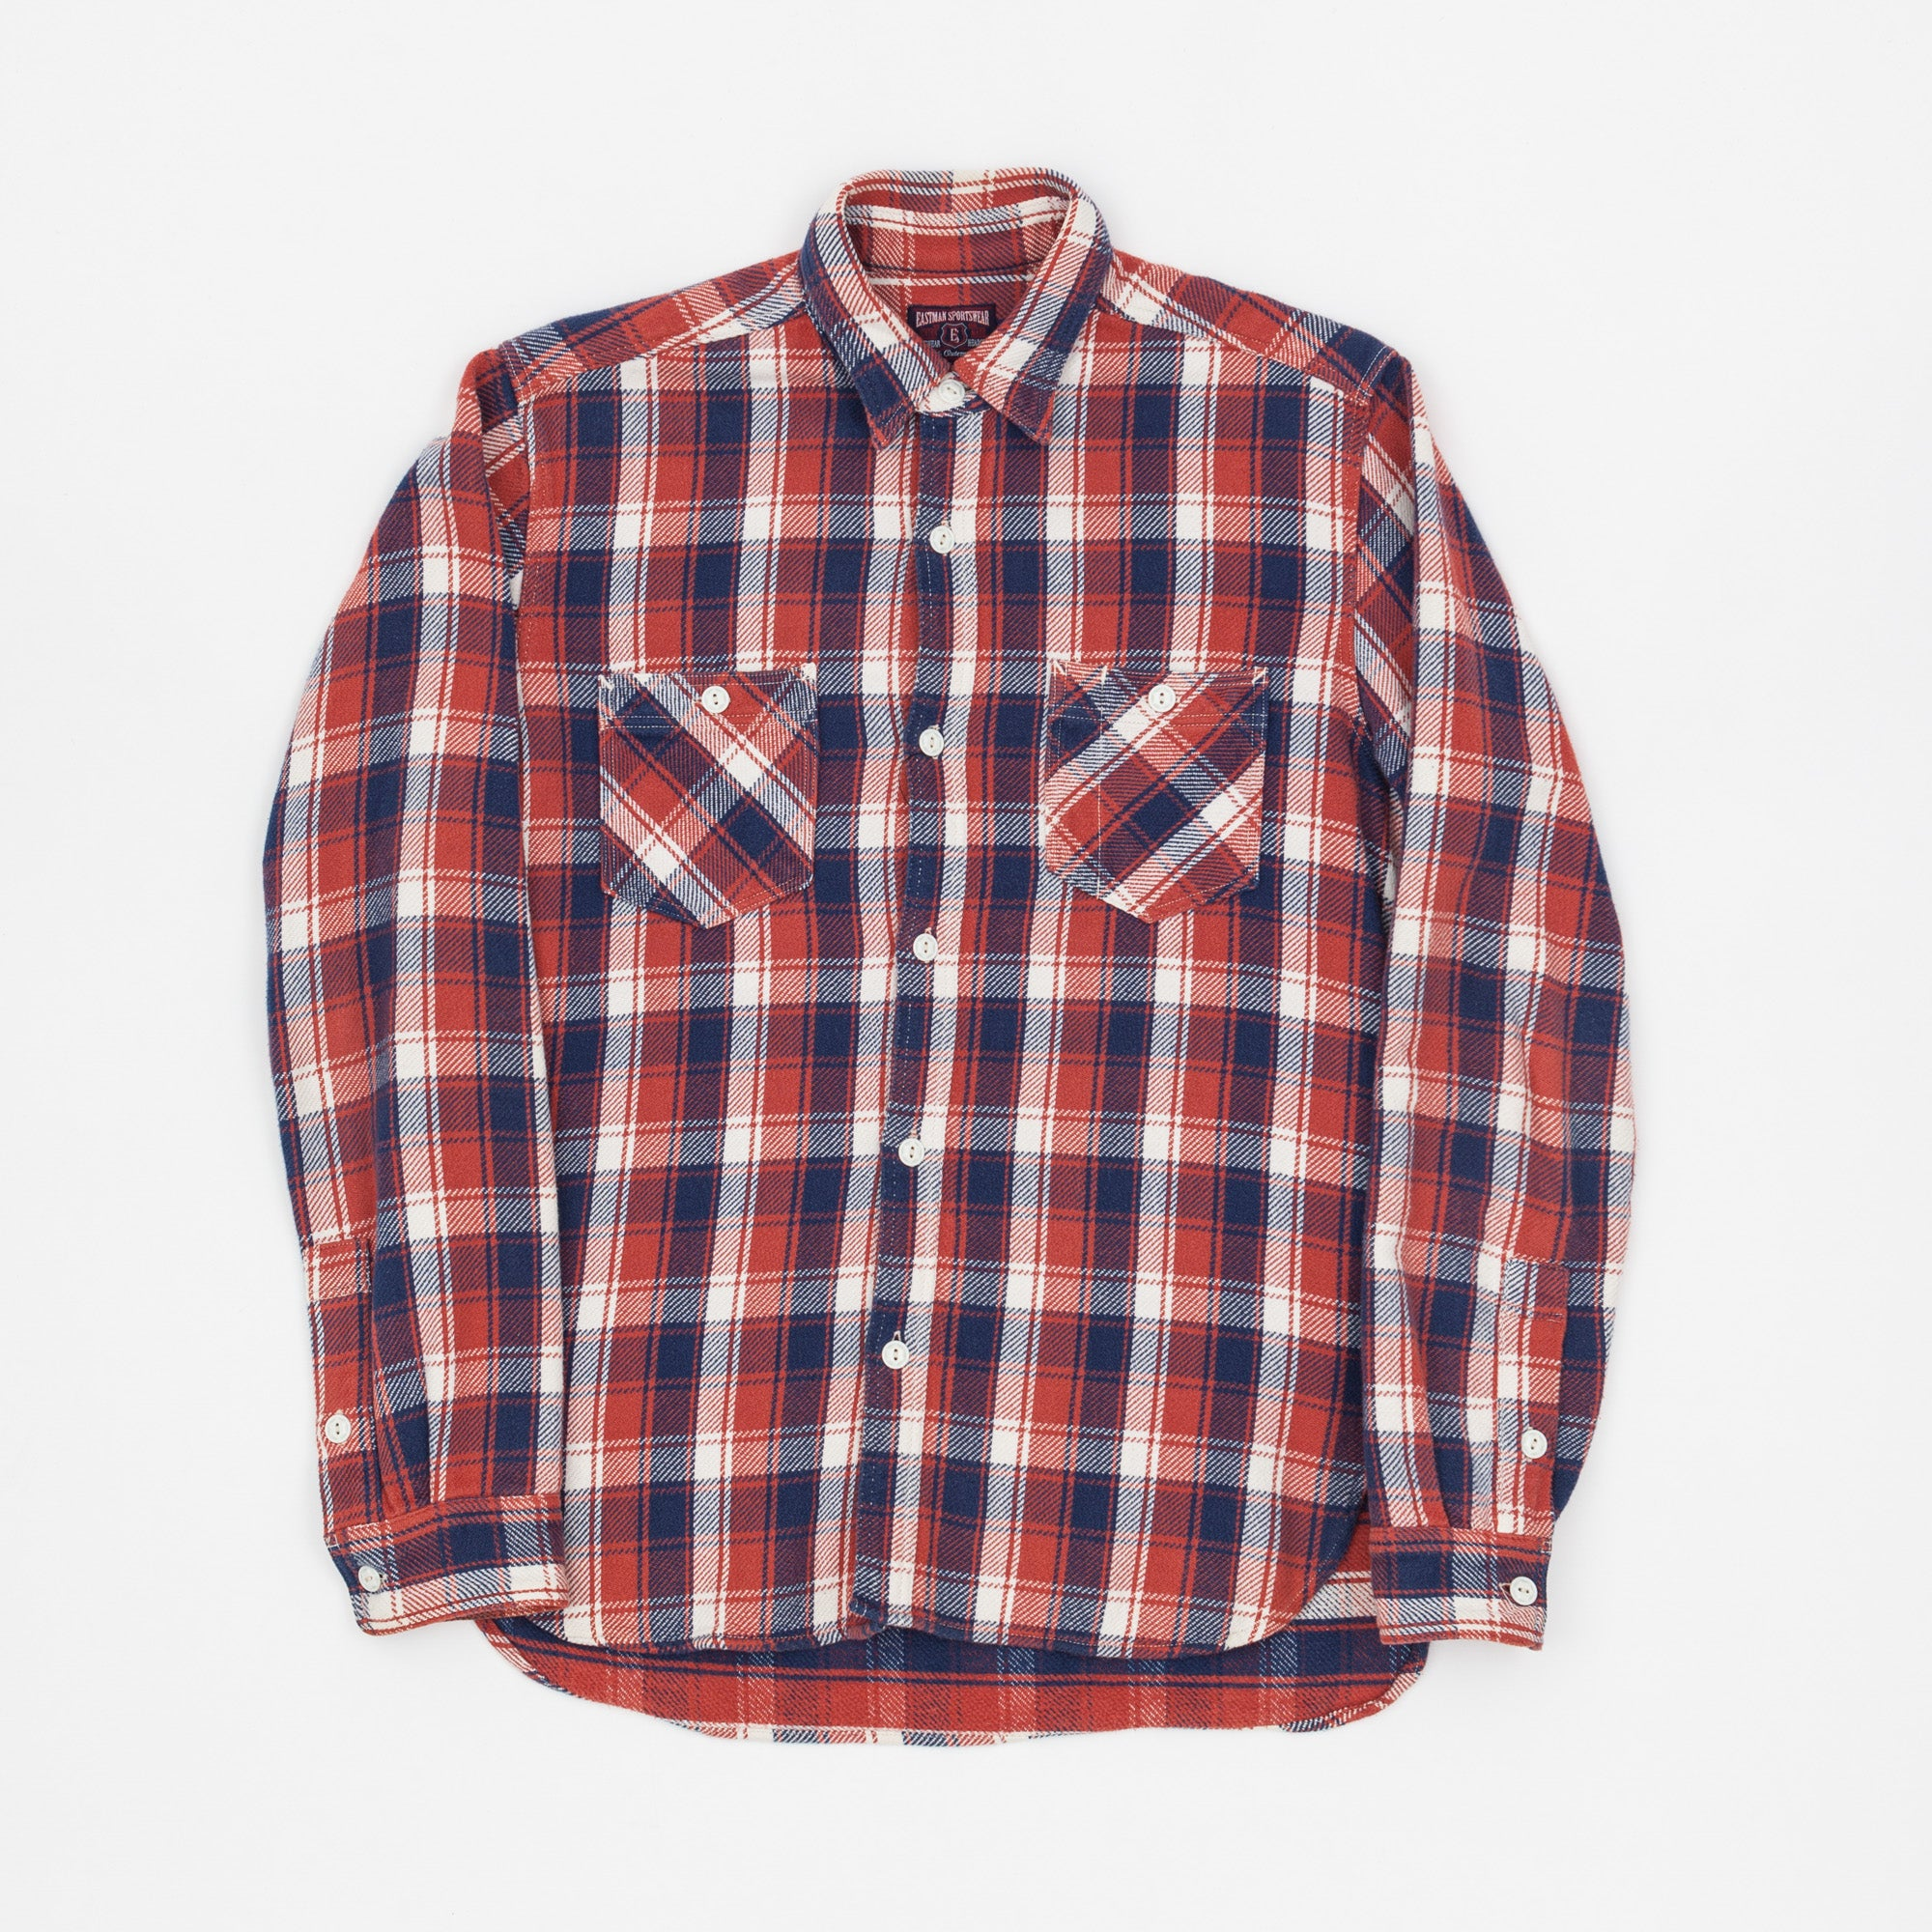 Eastman Leather Clothing Flannel Shirt